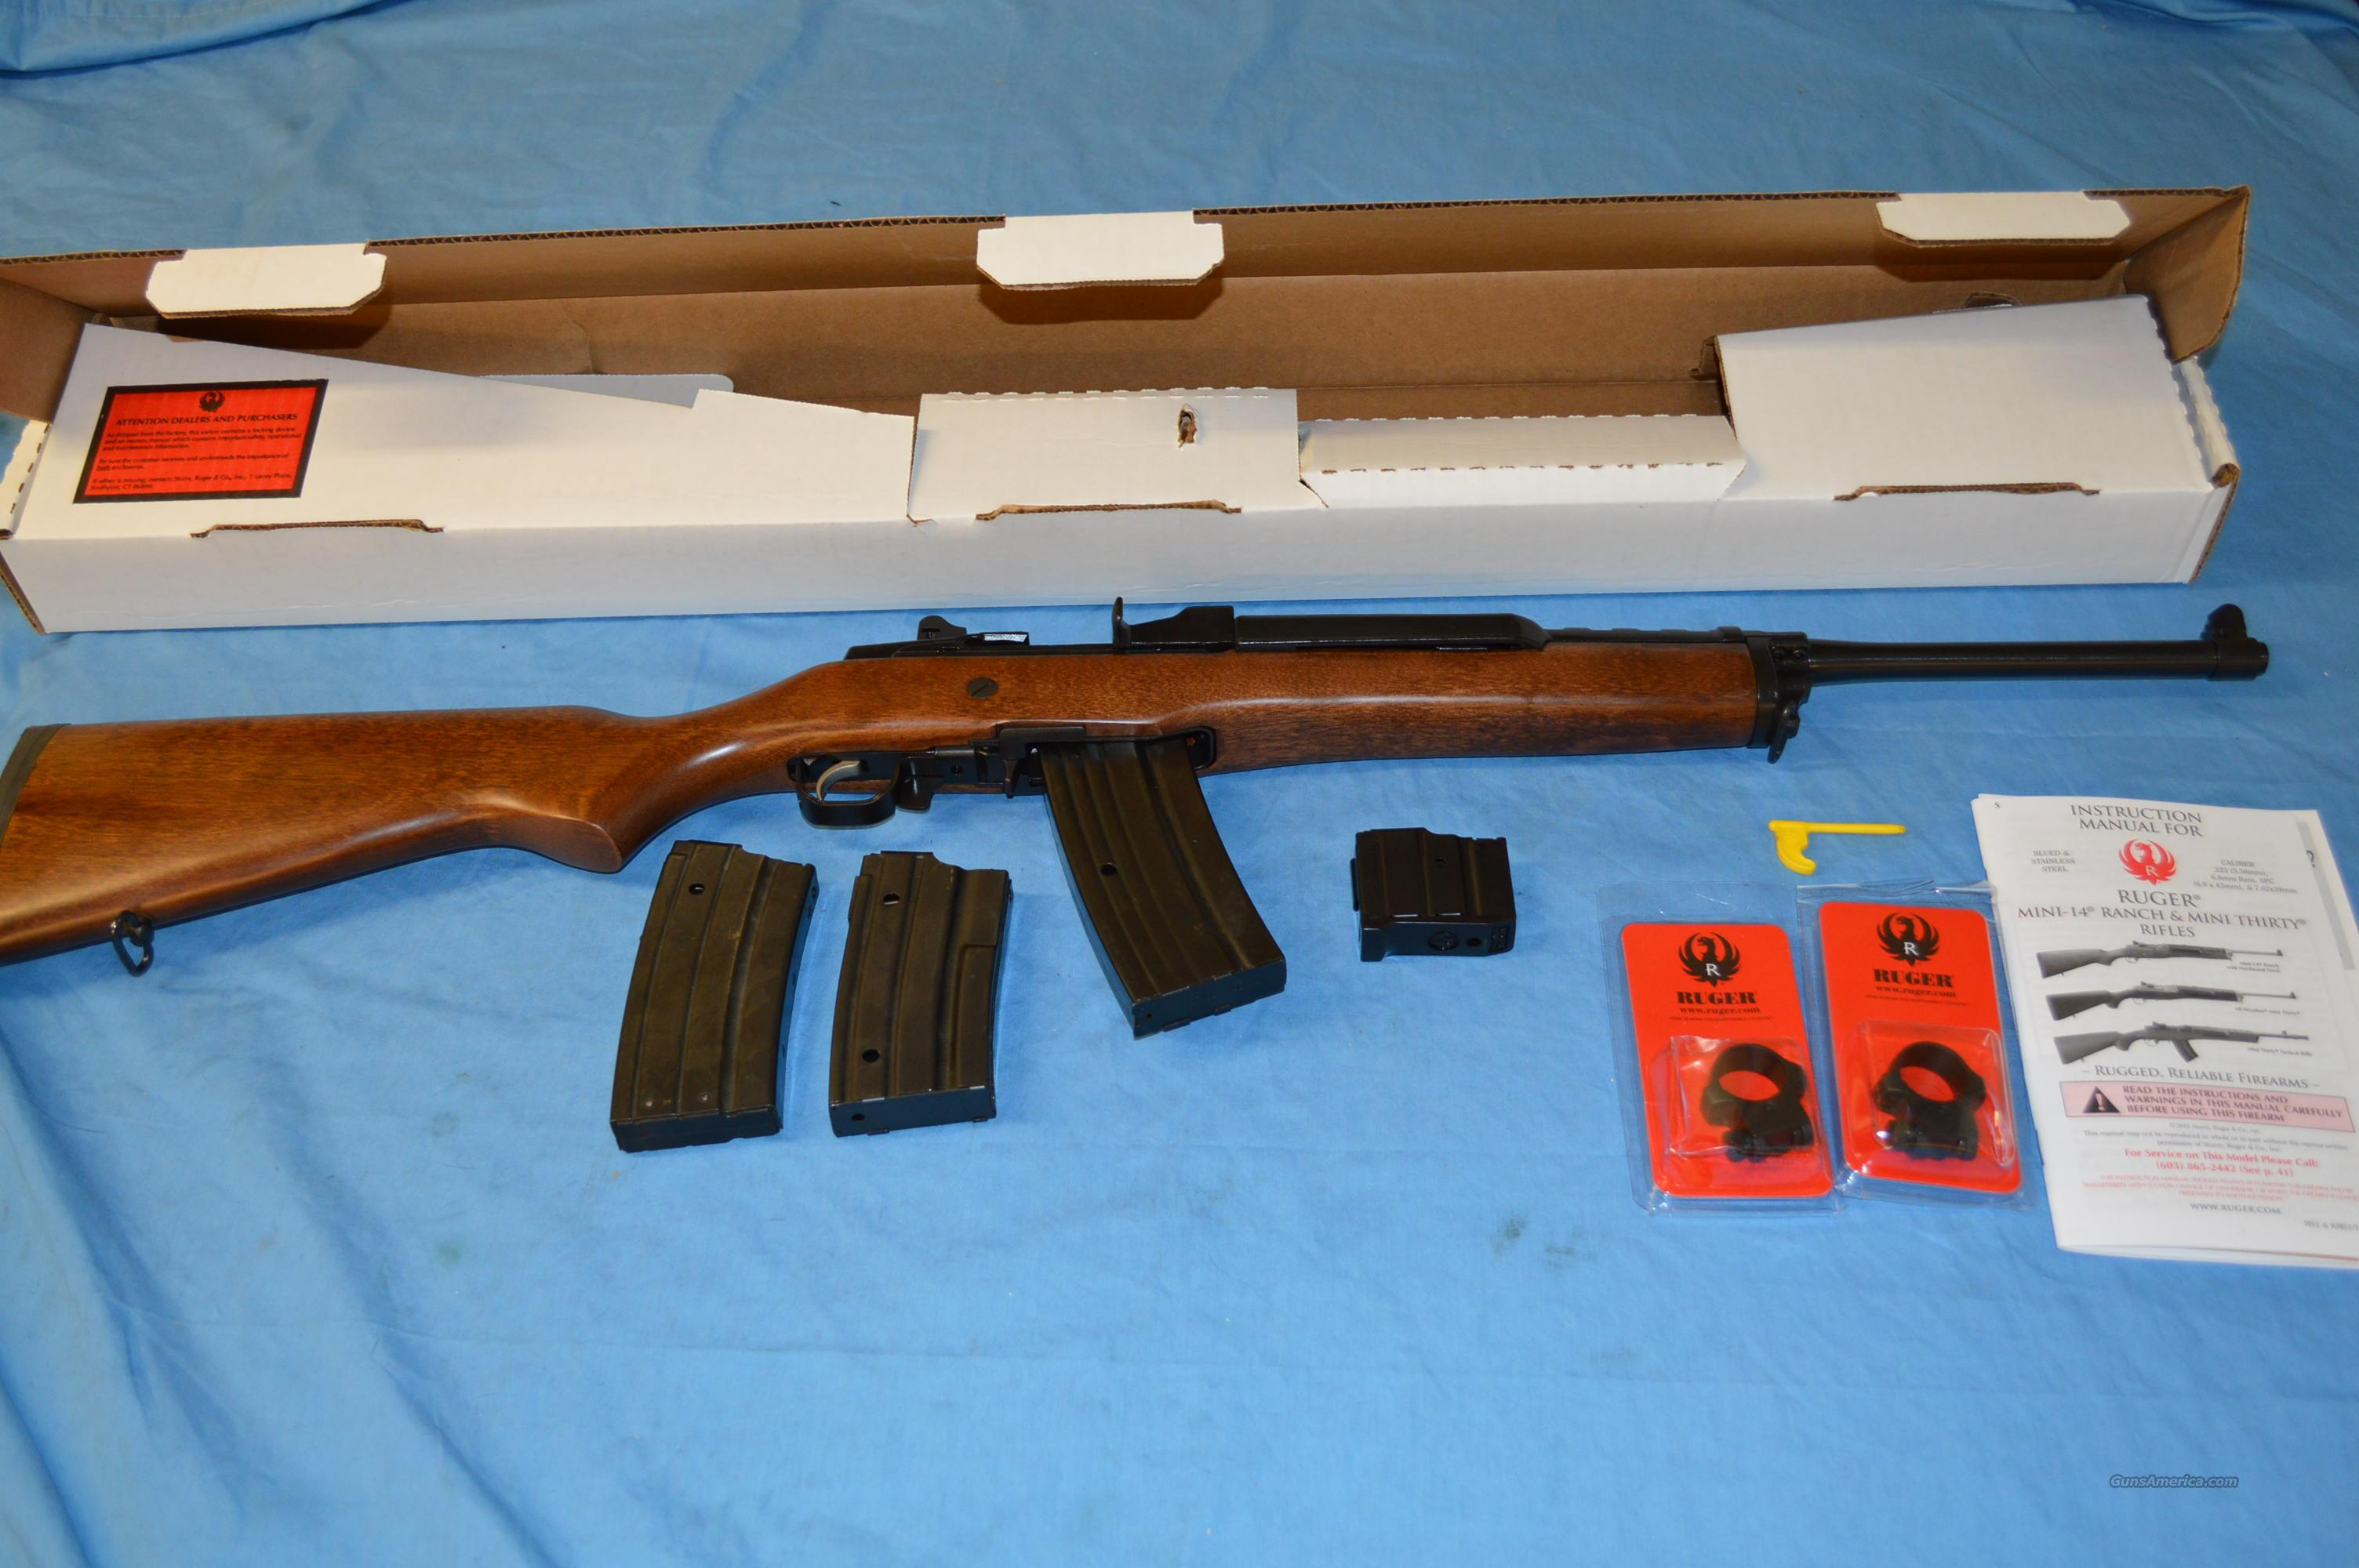 HI CAP RUGER MINI 14  Guns > Rifles > Ruger Rifles > Mini-14 Type